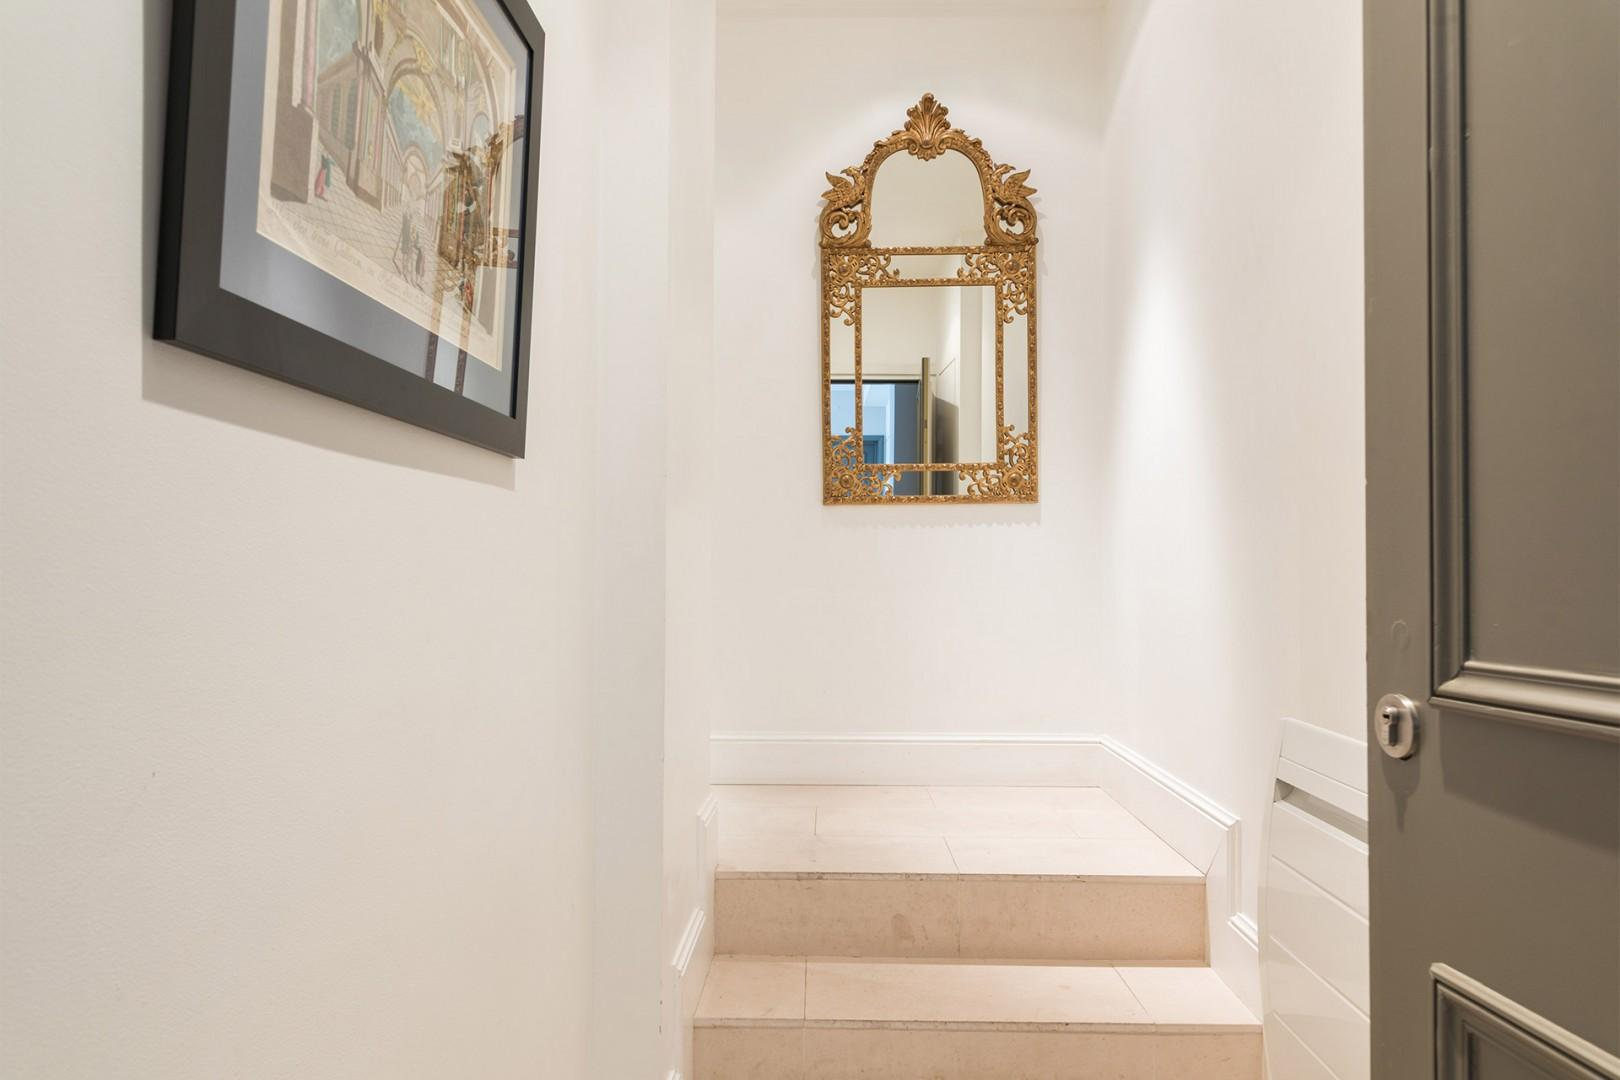 A Belle Epoque-styled mirror decorates the entryway.